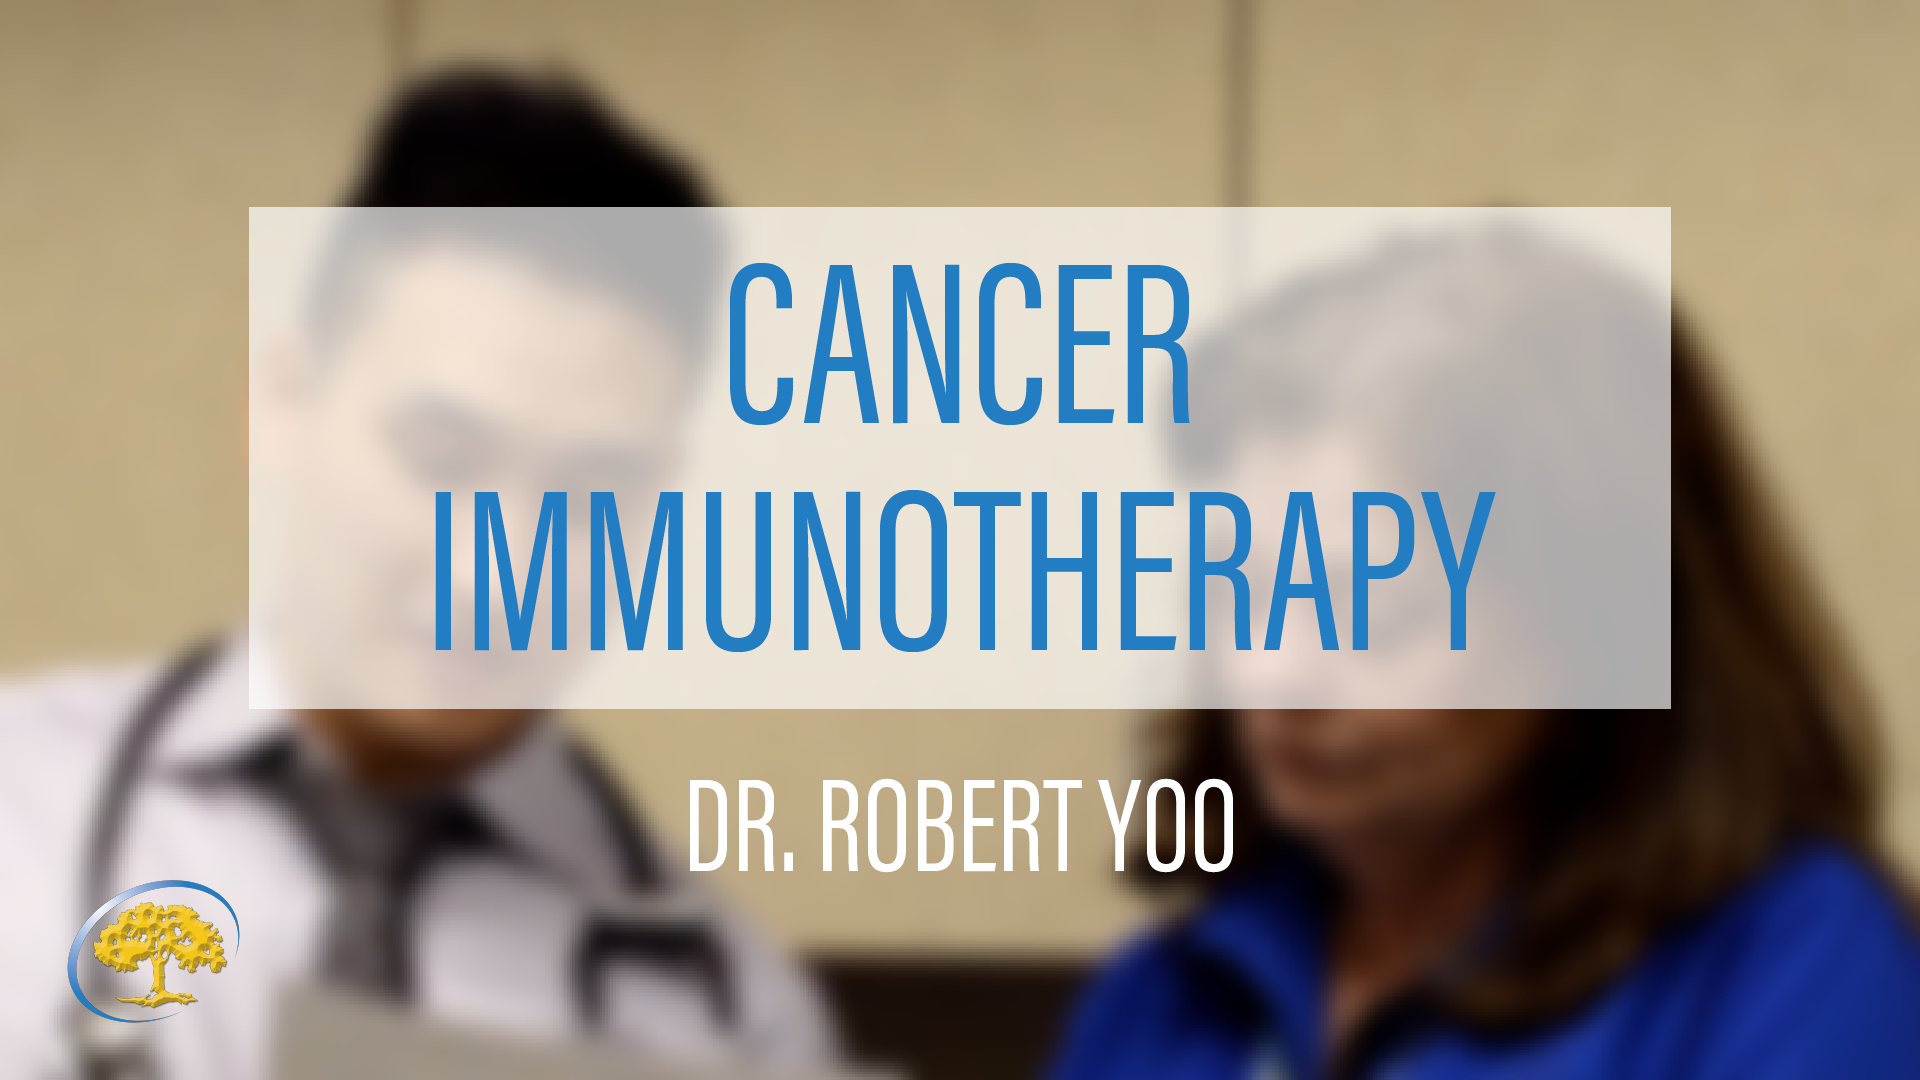 Immunotherapy with Dr. yoo